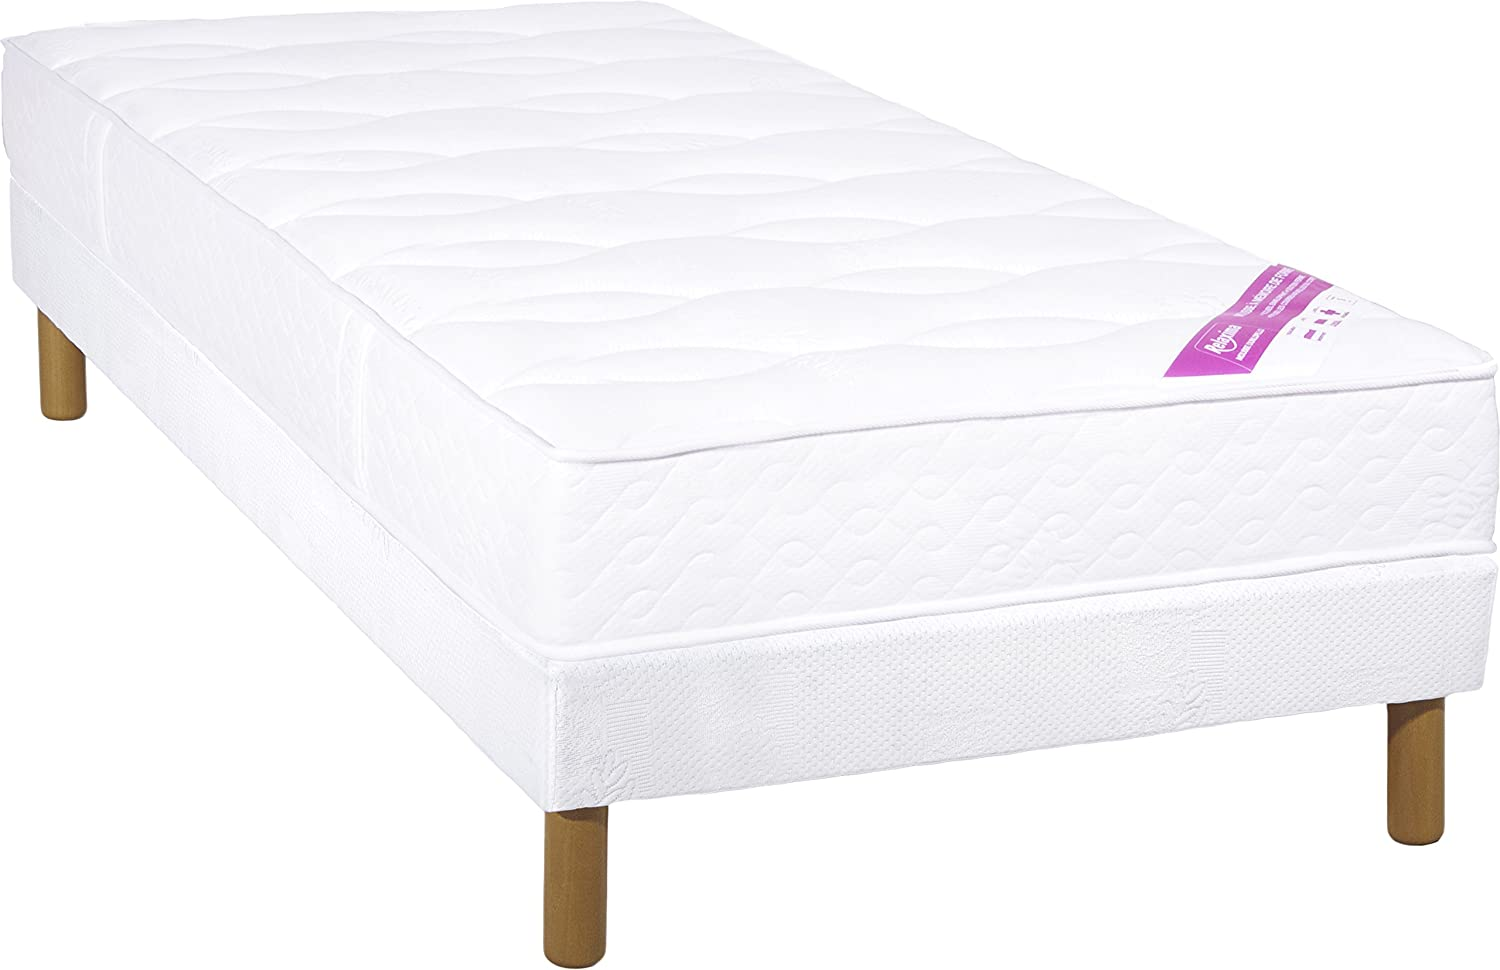 Relaxima 2103279 Salvador Dunlopillo Mattress Slatted Feet Folding Bed Smooth Band Canopy Colour 90 X 190 Cm Kitchen Home